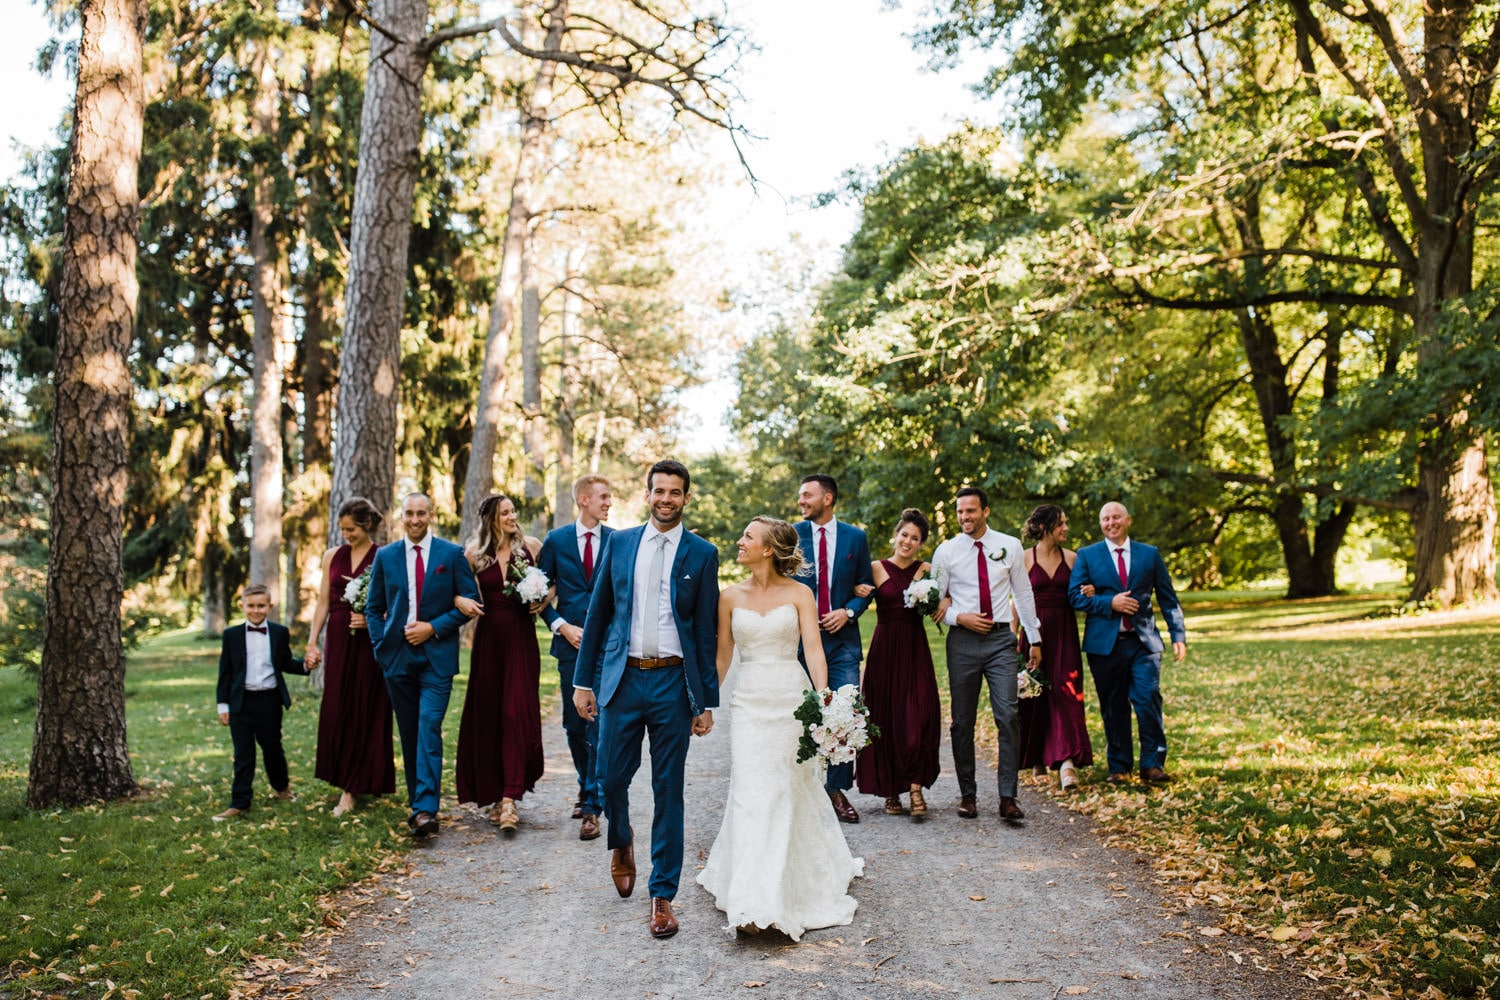 wedding party walks down stone path together - glebe community centre wedding